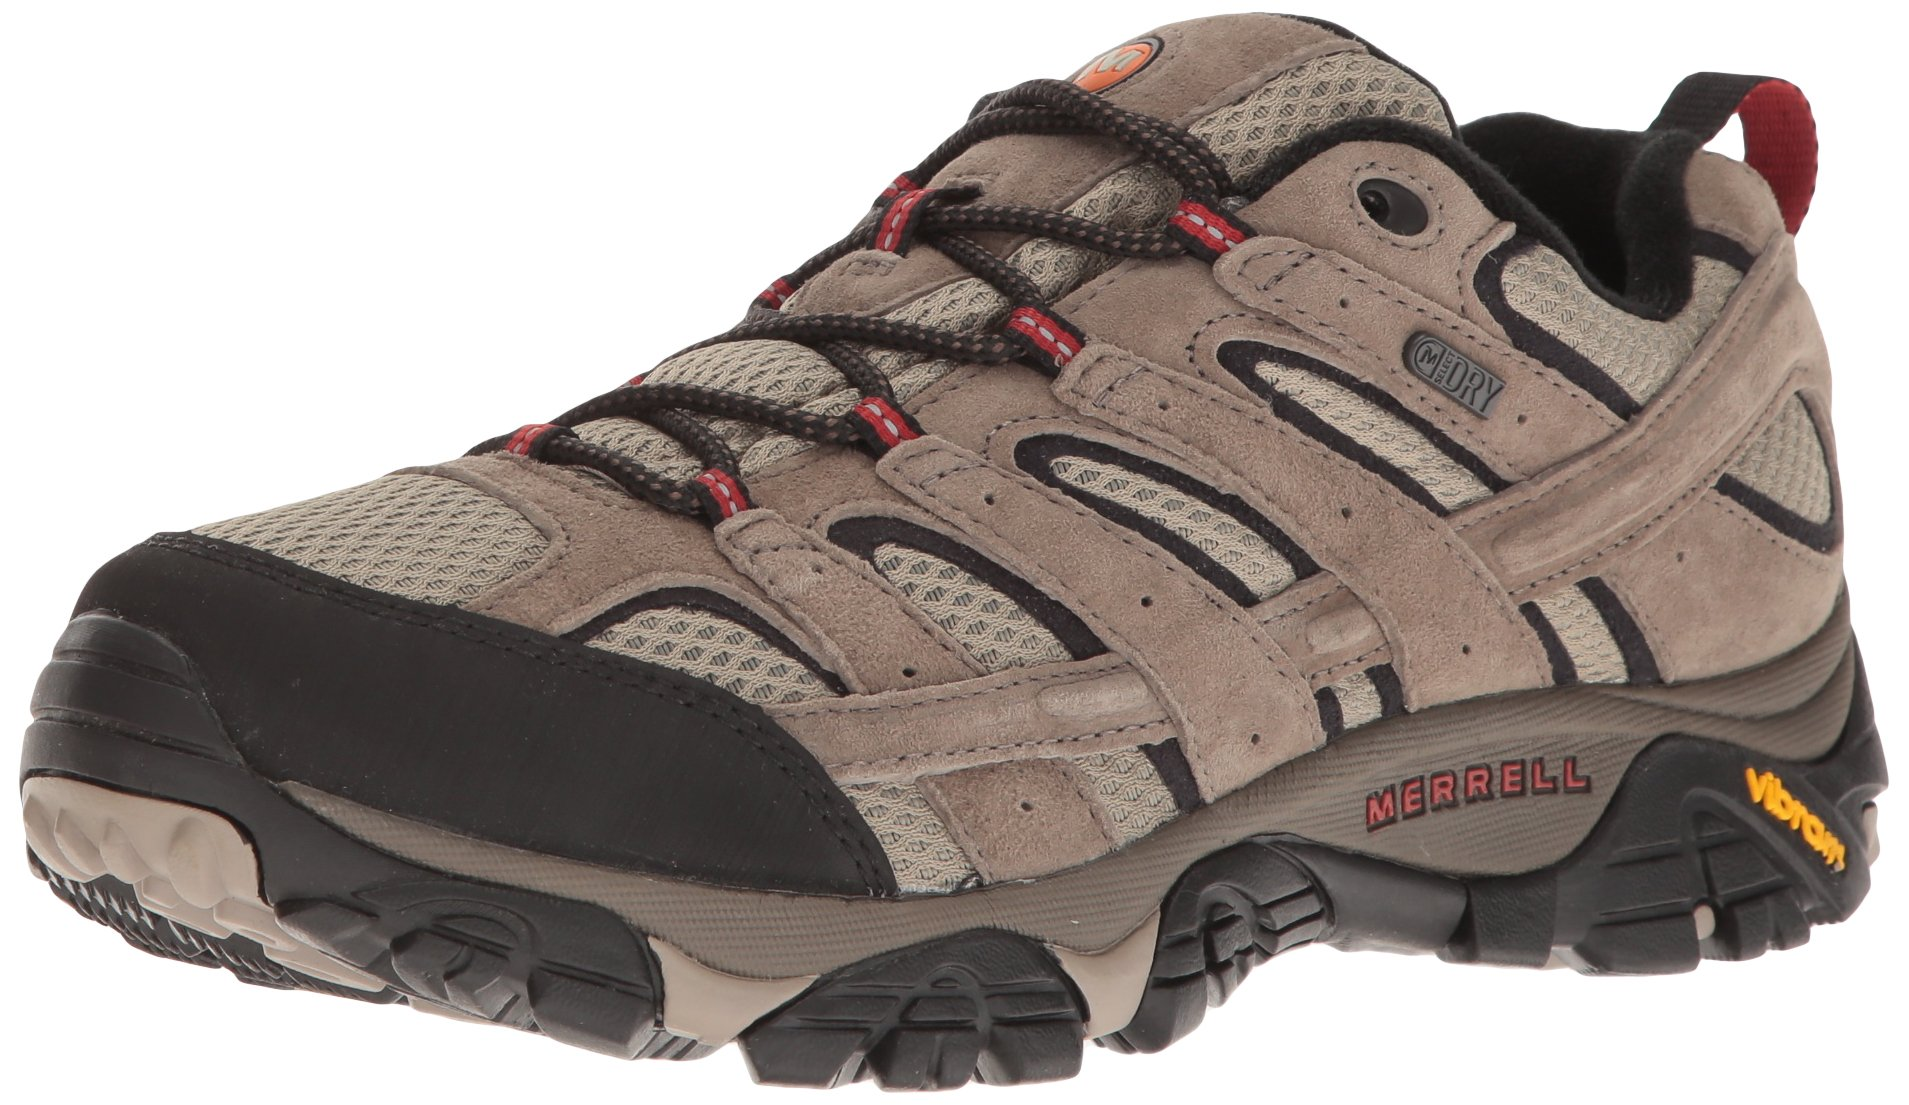 Merrell Men's Moab 2 Waterproof Hiking Shoe, Bark Brown, 7.5 2E US